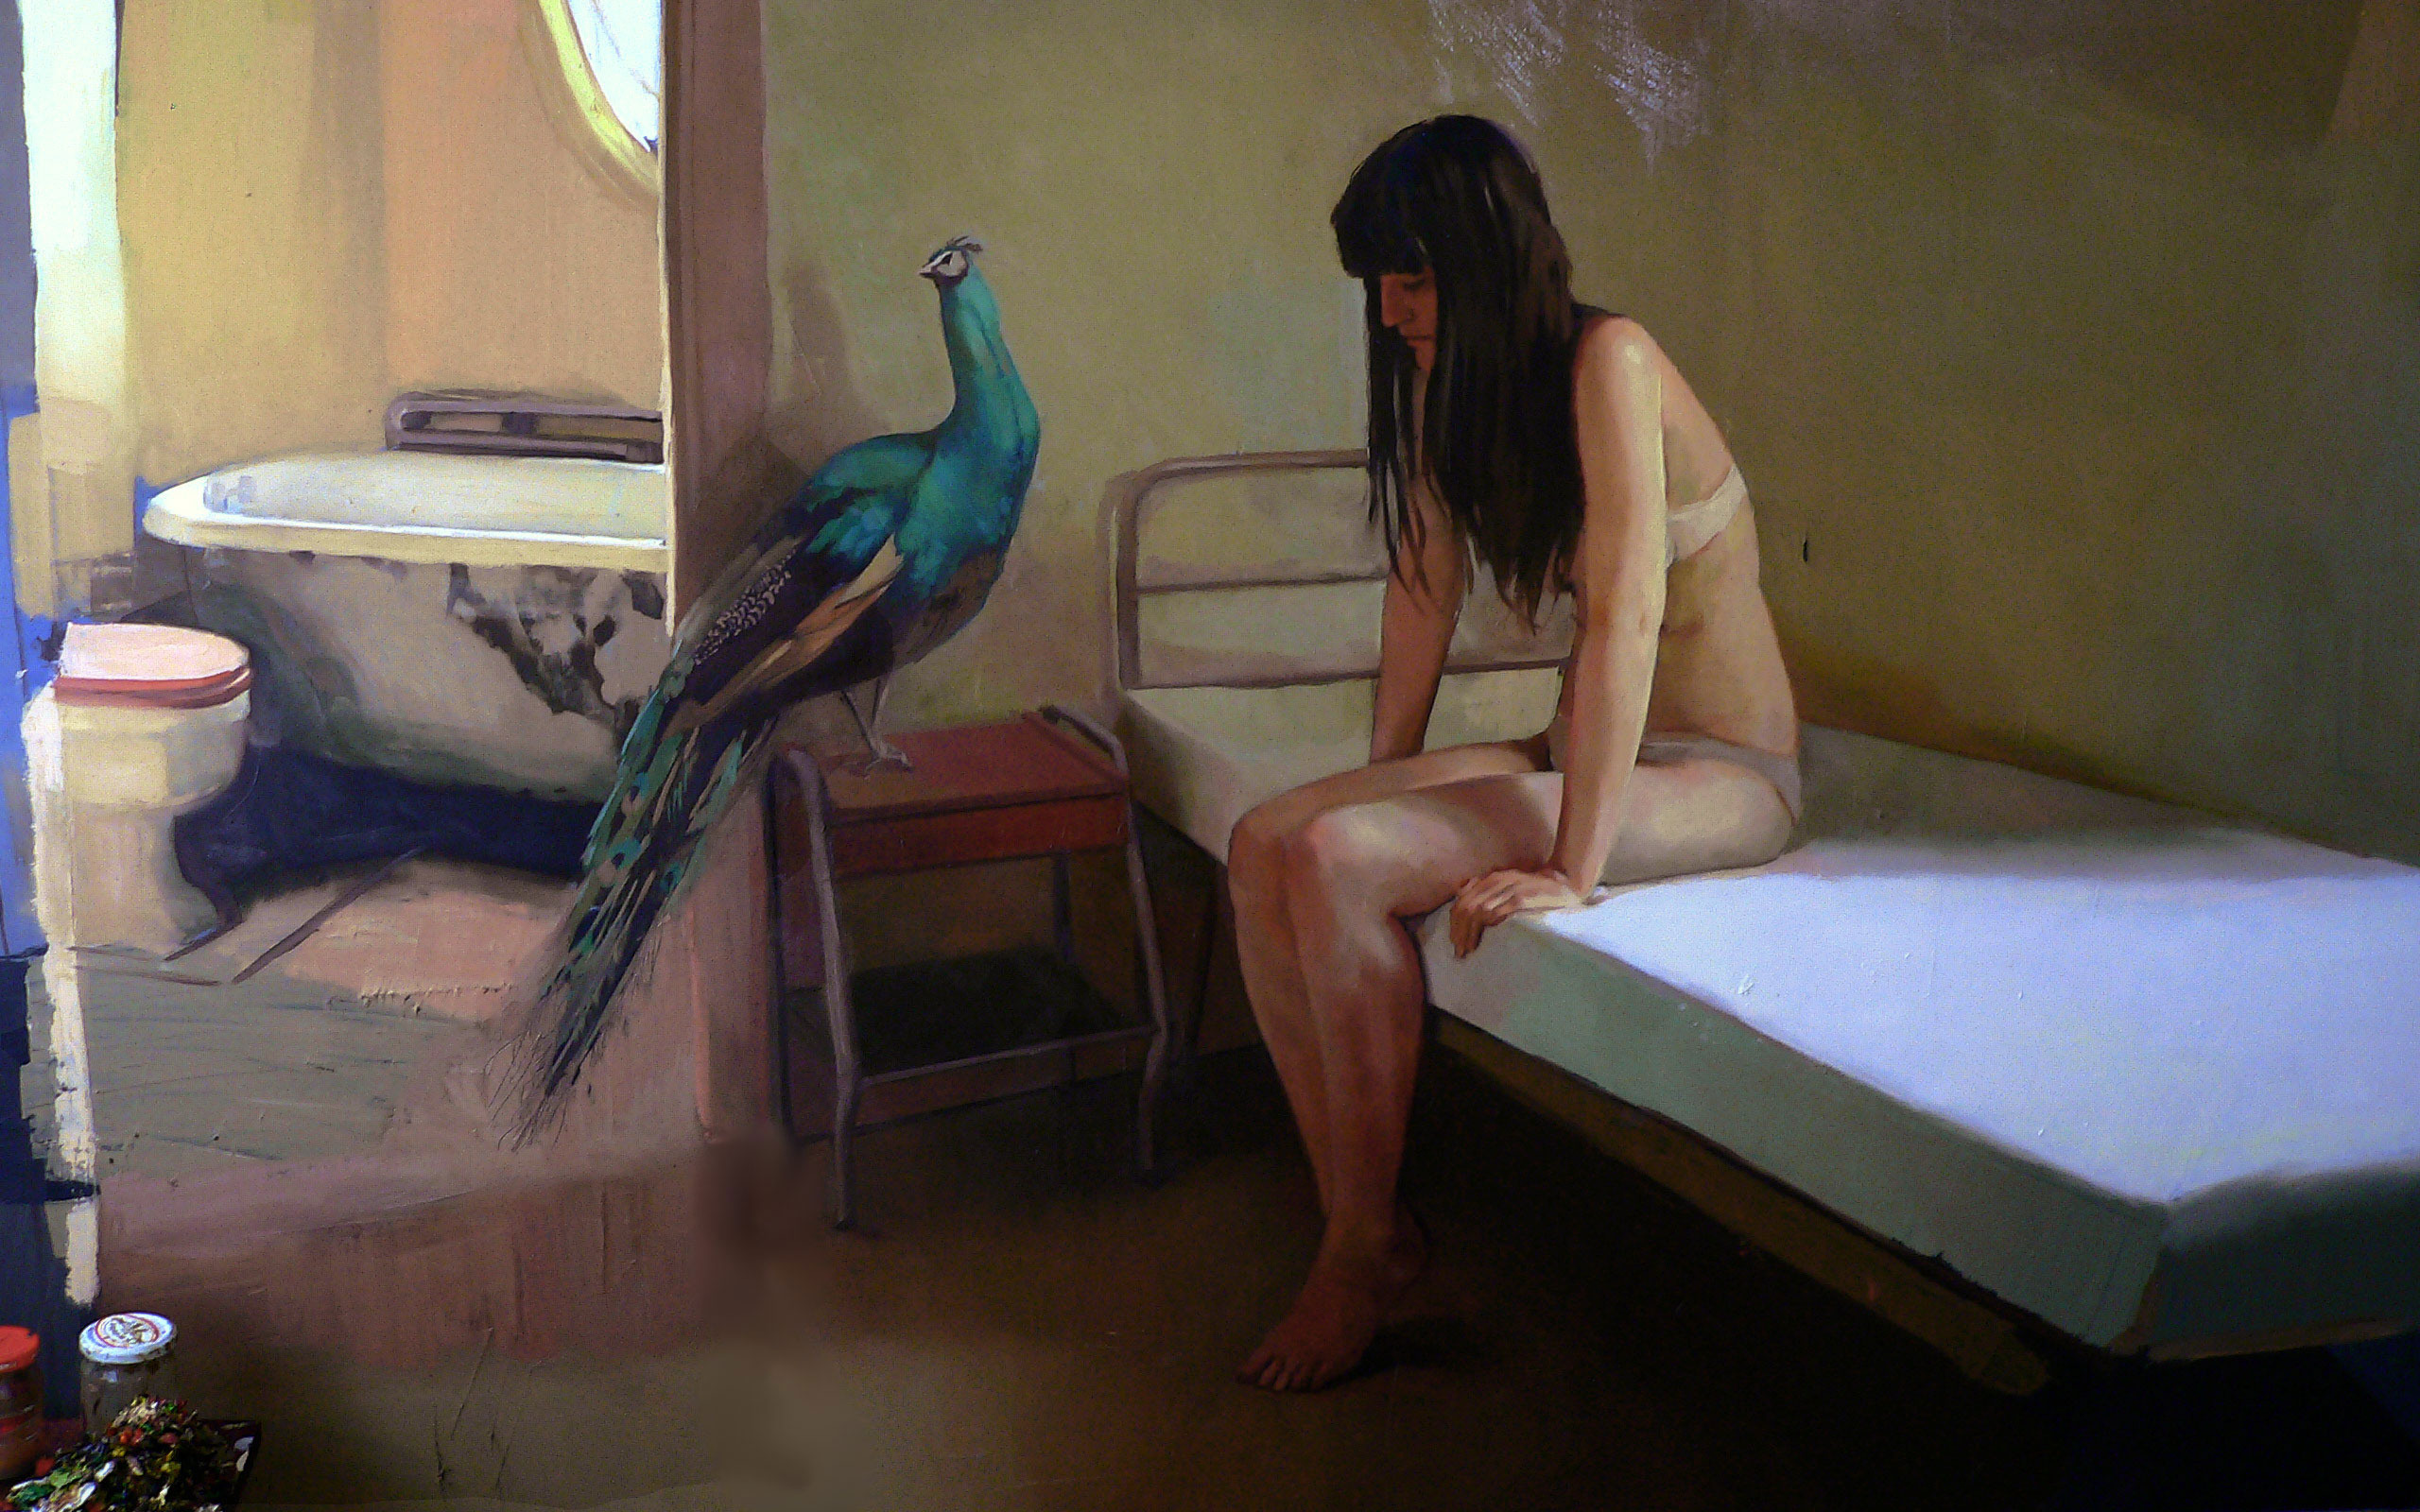 painting-girl-parrot-apartment-room-bath-toilet-sadness.jpg